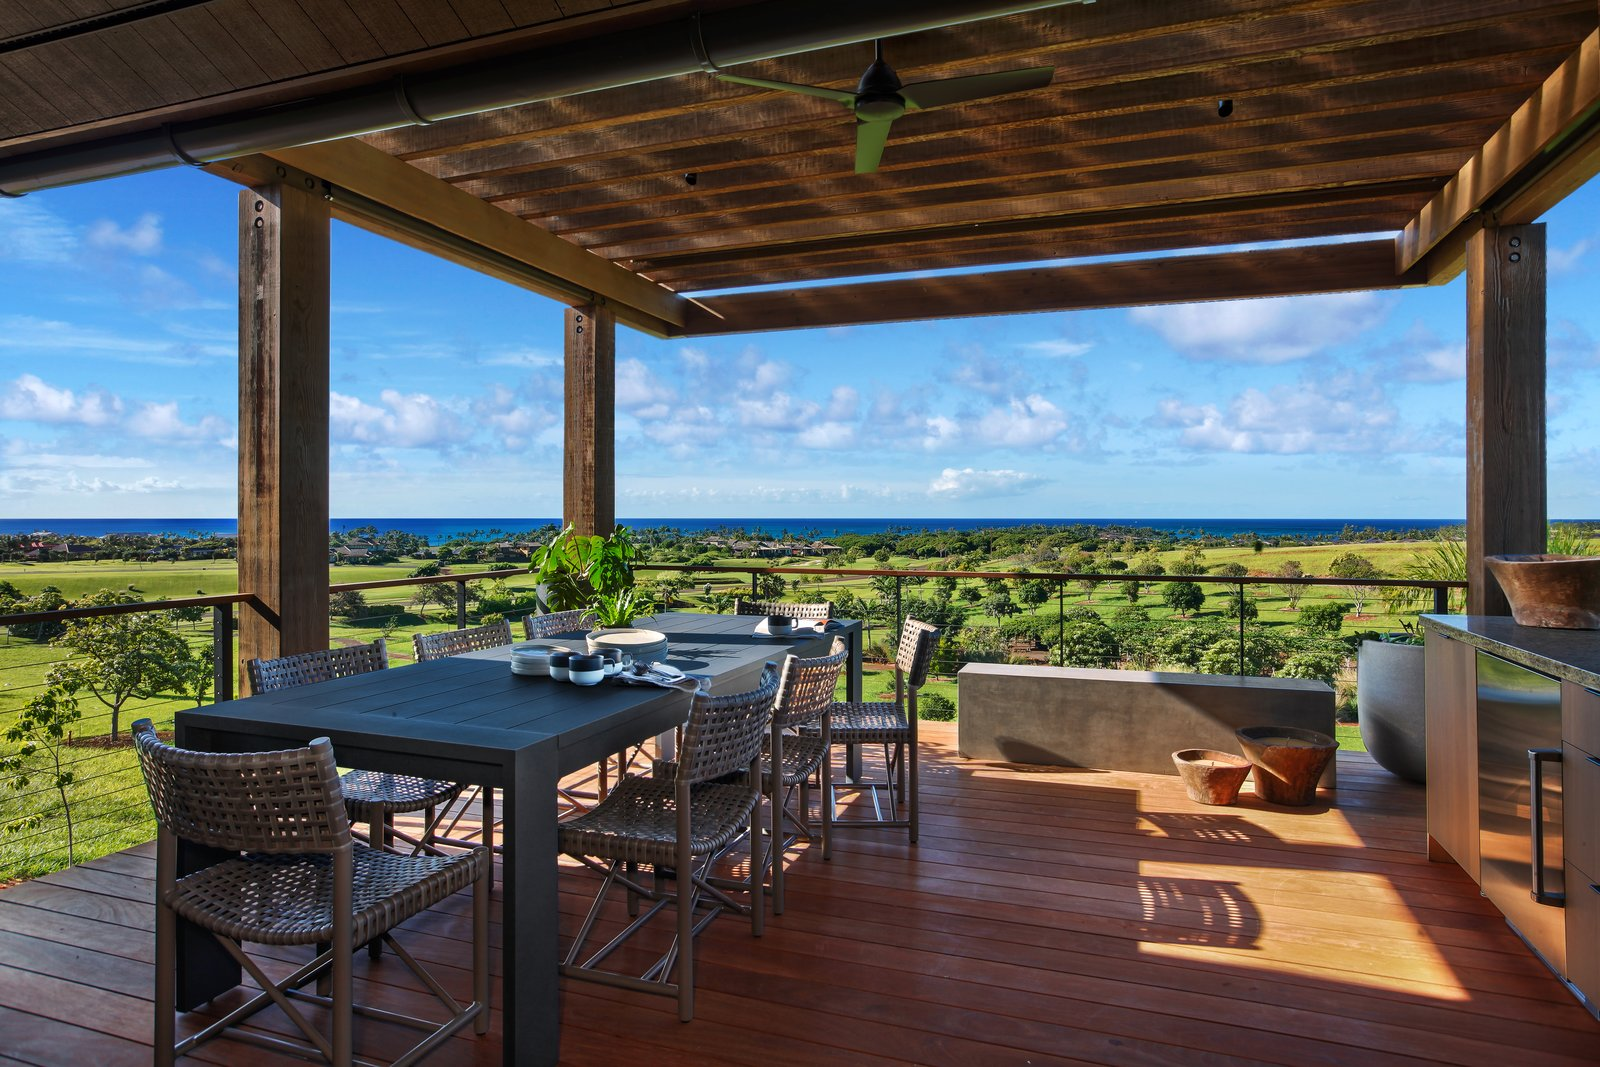 Outdoor, Back Yard, and Large Patio, Porch, Deck A covered exterior dining area around the pool.  Photo 9 of 14 in A Breezy Hawaiian Residence by Olson Kundig Hits the Market at $6.95M